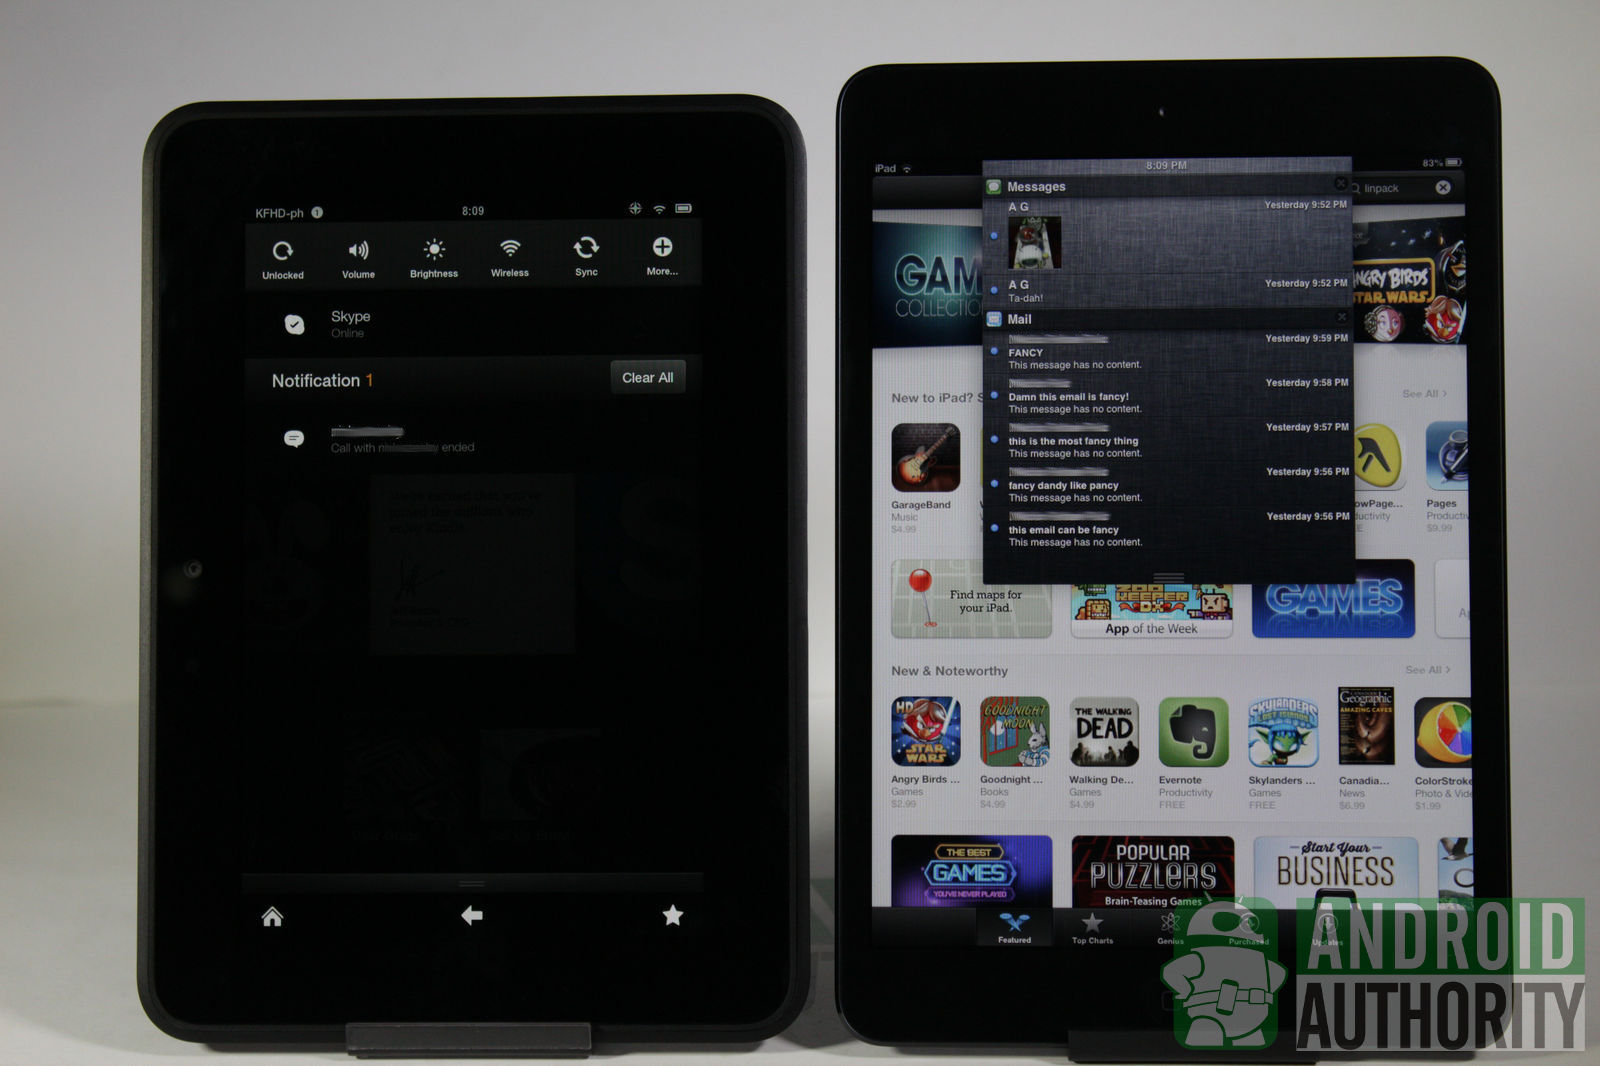 Phone Amazon Kindle For Android Phone apple ipad mini vs amazon kindle fire hd in the case of has chosen to retain some default android look and behavior pull down notification menu has